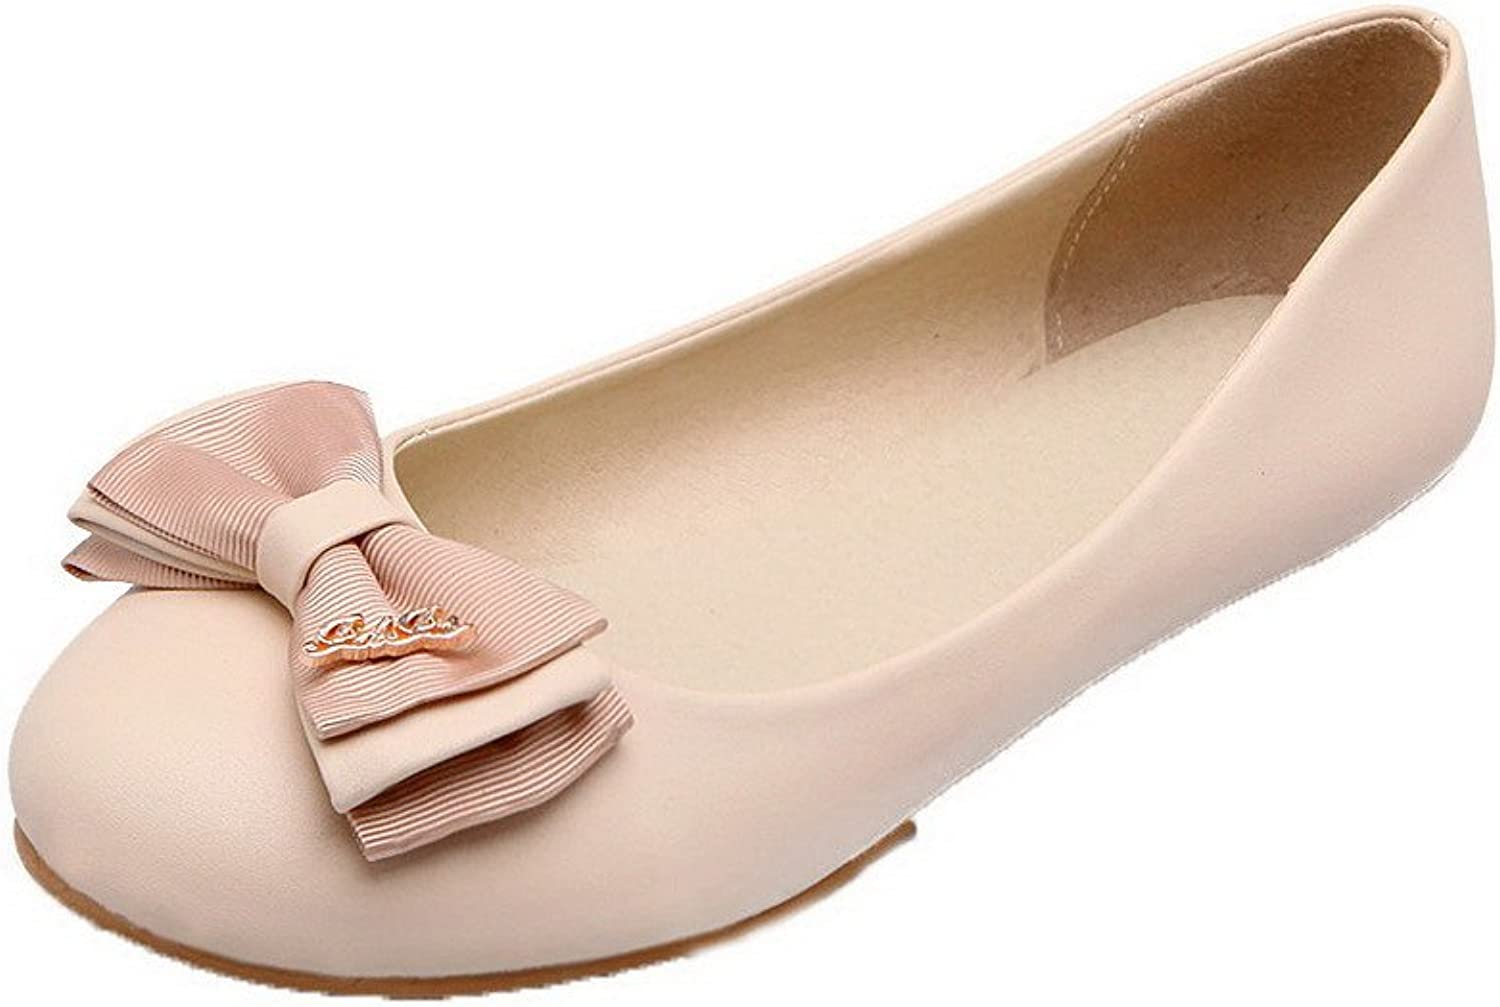 AmoonyFashion Women's PU Solid Pull-On Closed Round Toe No-Heel Pumps-shoes